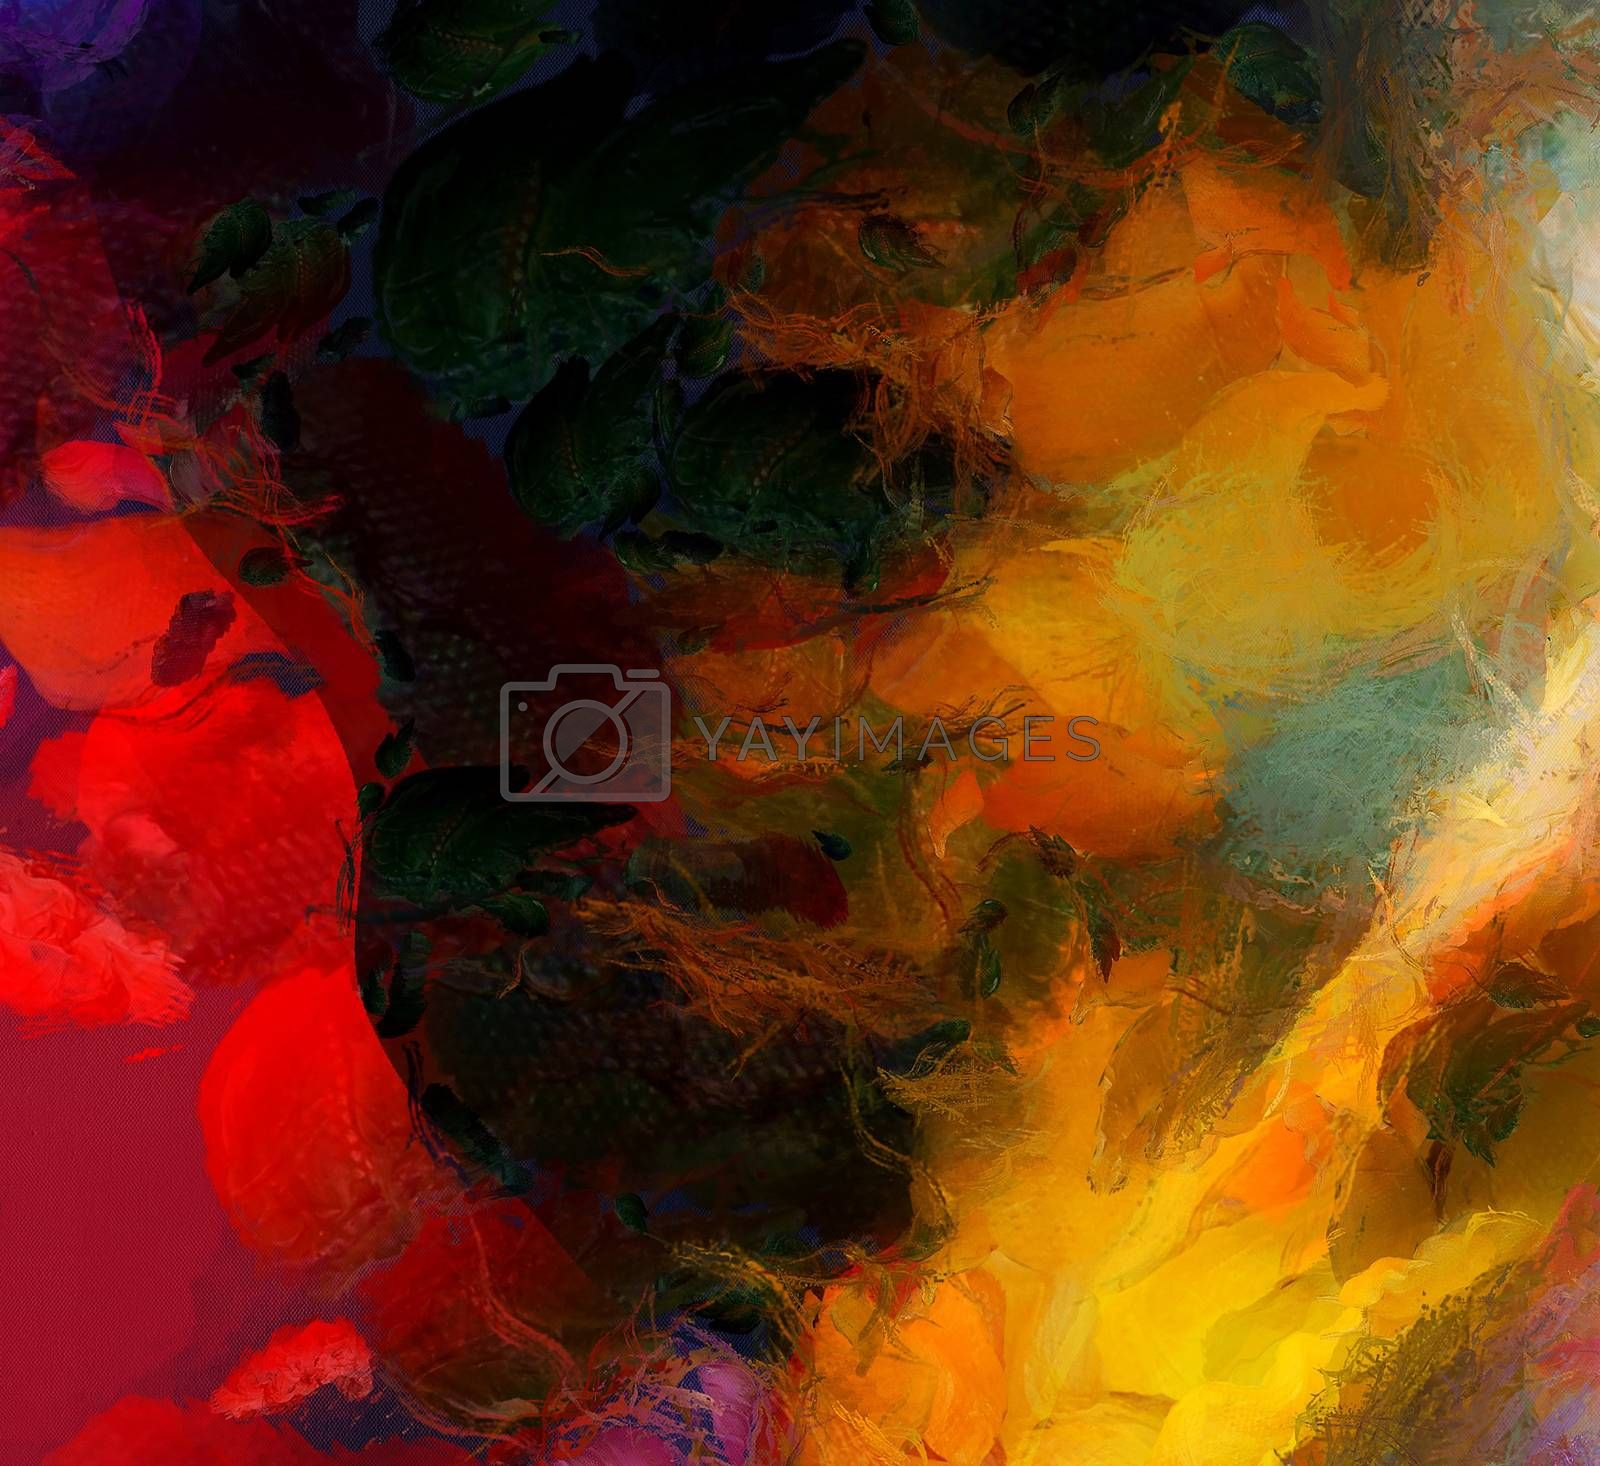 Colorful Hot Abstract Painting. 3D rendering